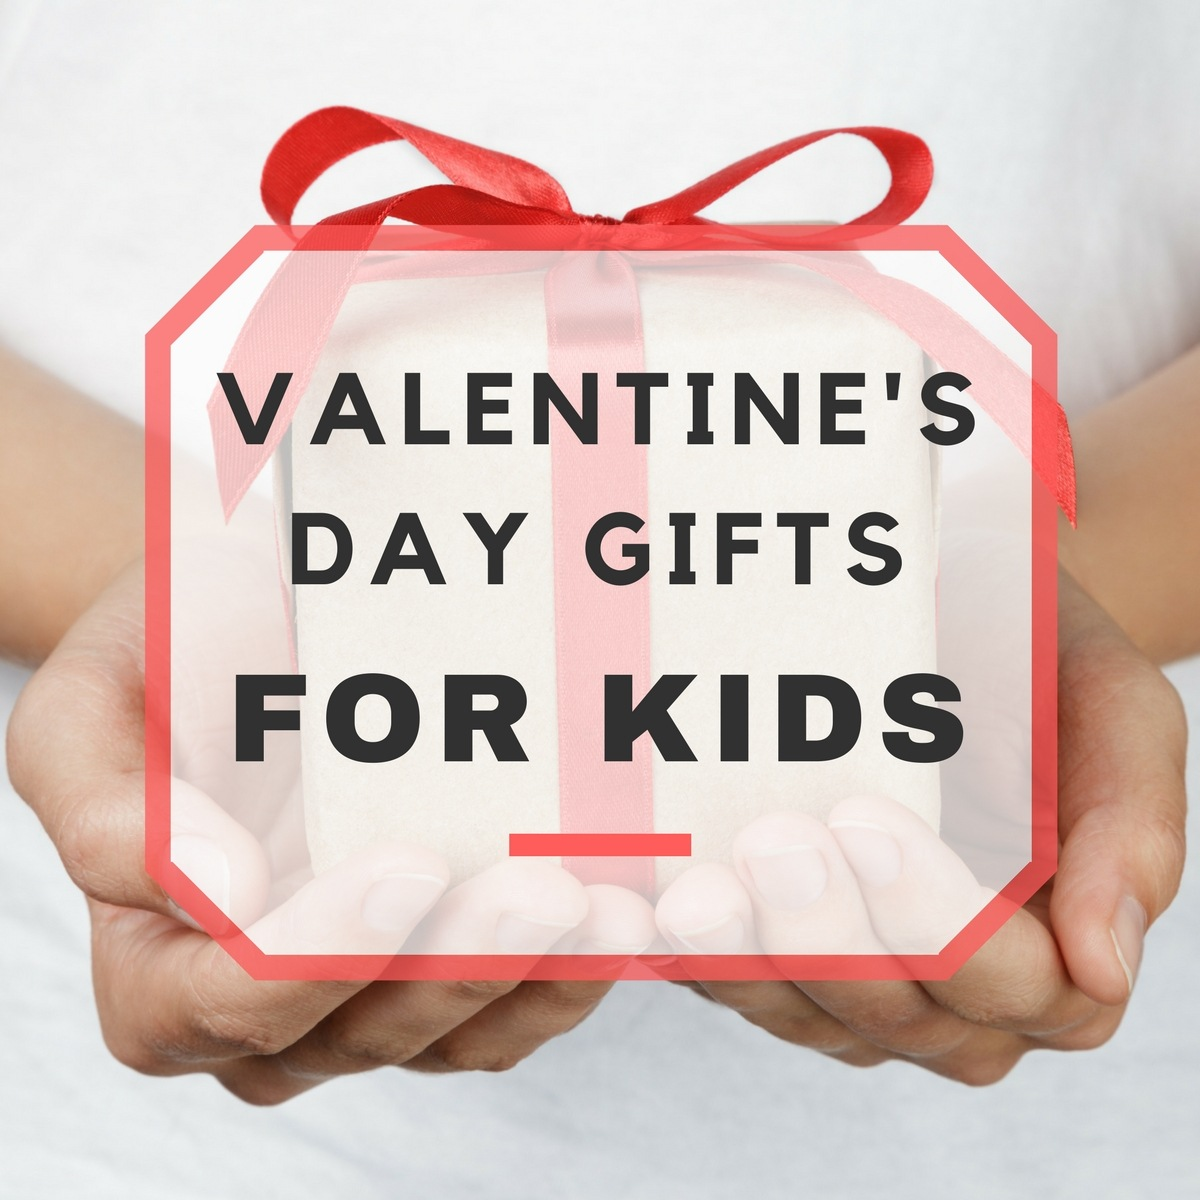 Cute Valentine's Day Gift Ideas for Kids